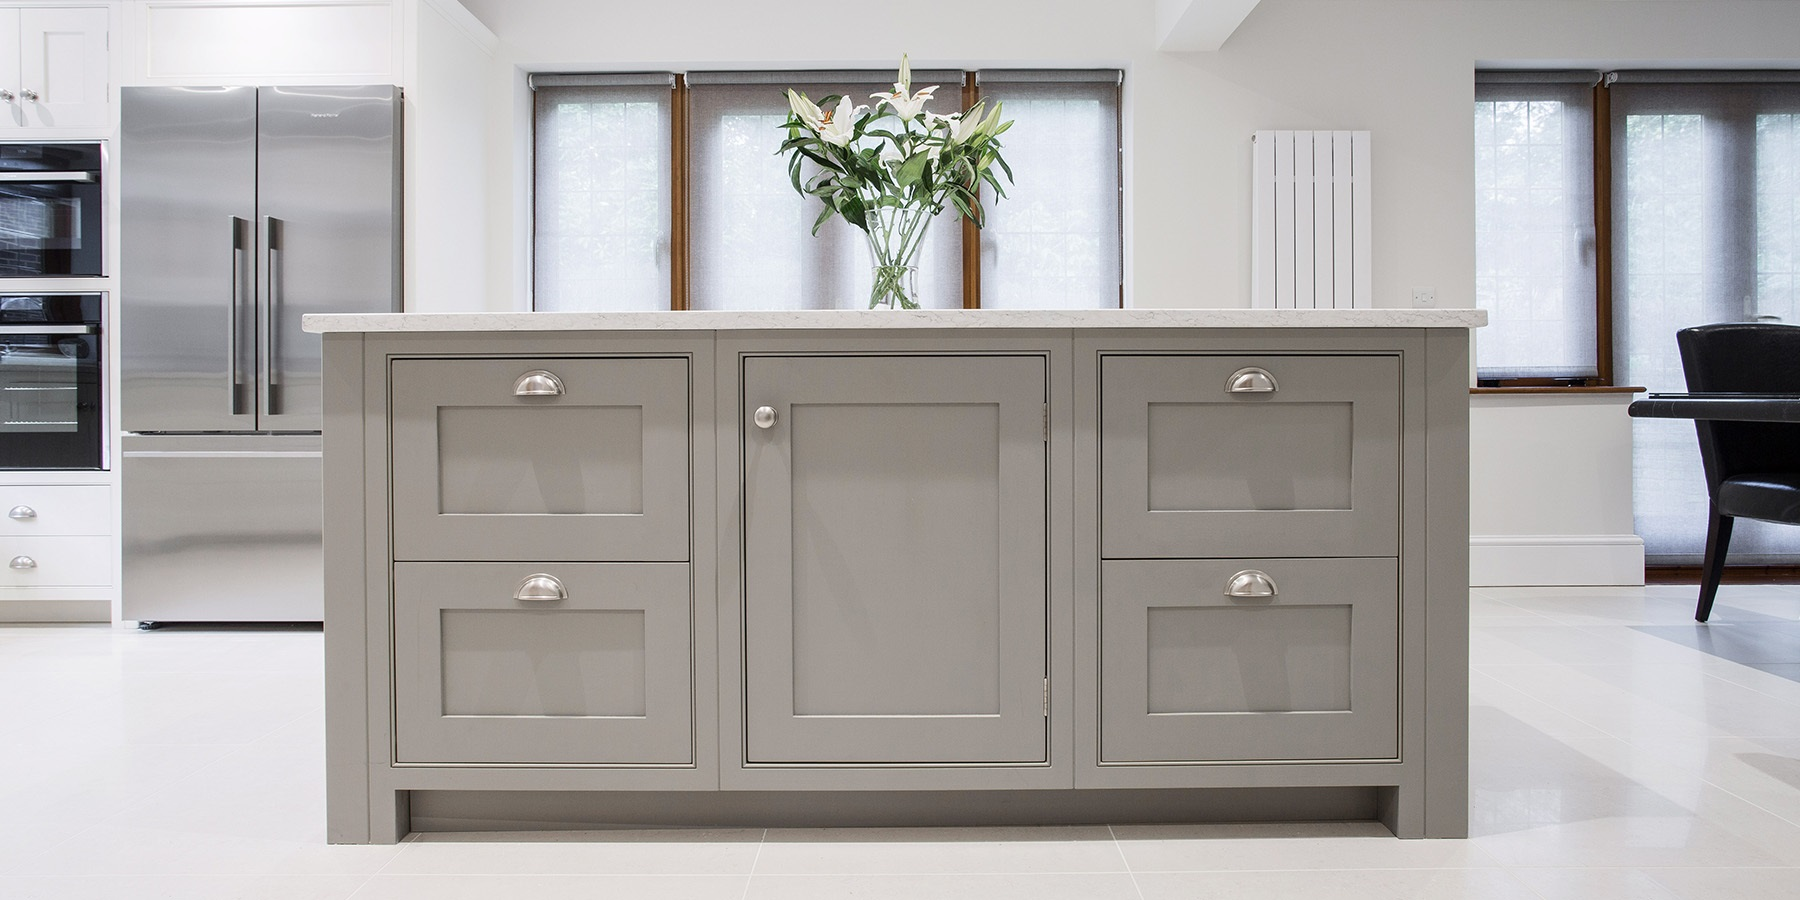 Burlanes | Burlanes design and handmake bespoke kitchens of the highest quality - All of our kitchens are designed, handmade and handpainted in our own Kent workshop.